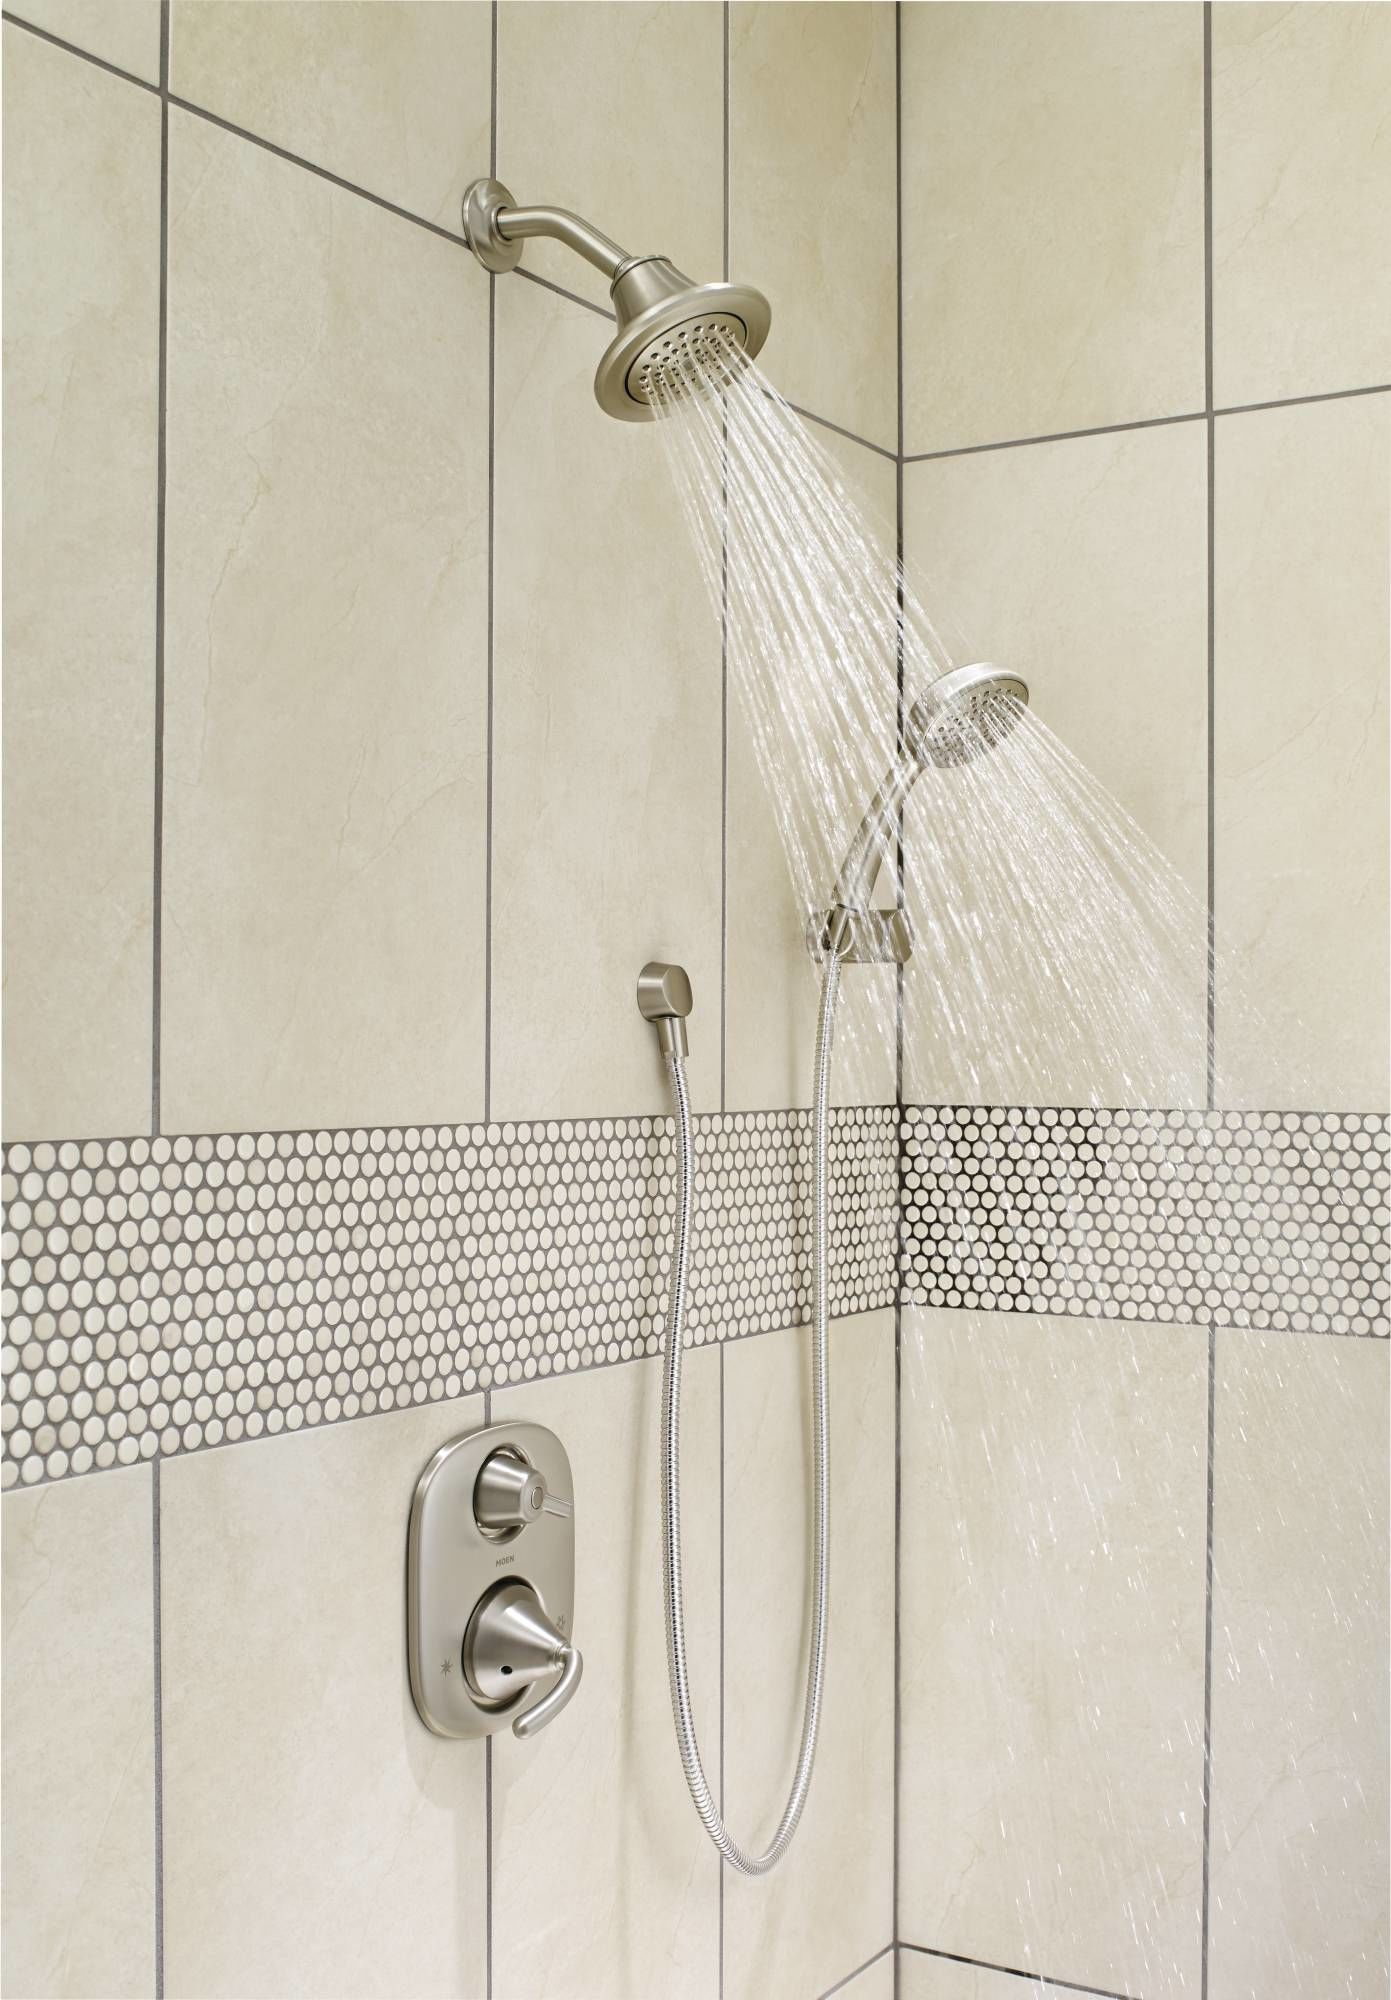 shower bar system. Moen 600 Chrome Pressure Balanced Shower System With Diverter, Integrated Volume Control, Slide Bar, And Hand From The Icon Collection (Valves Bar S